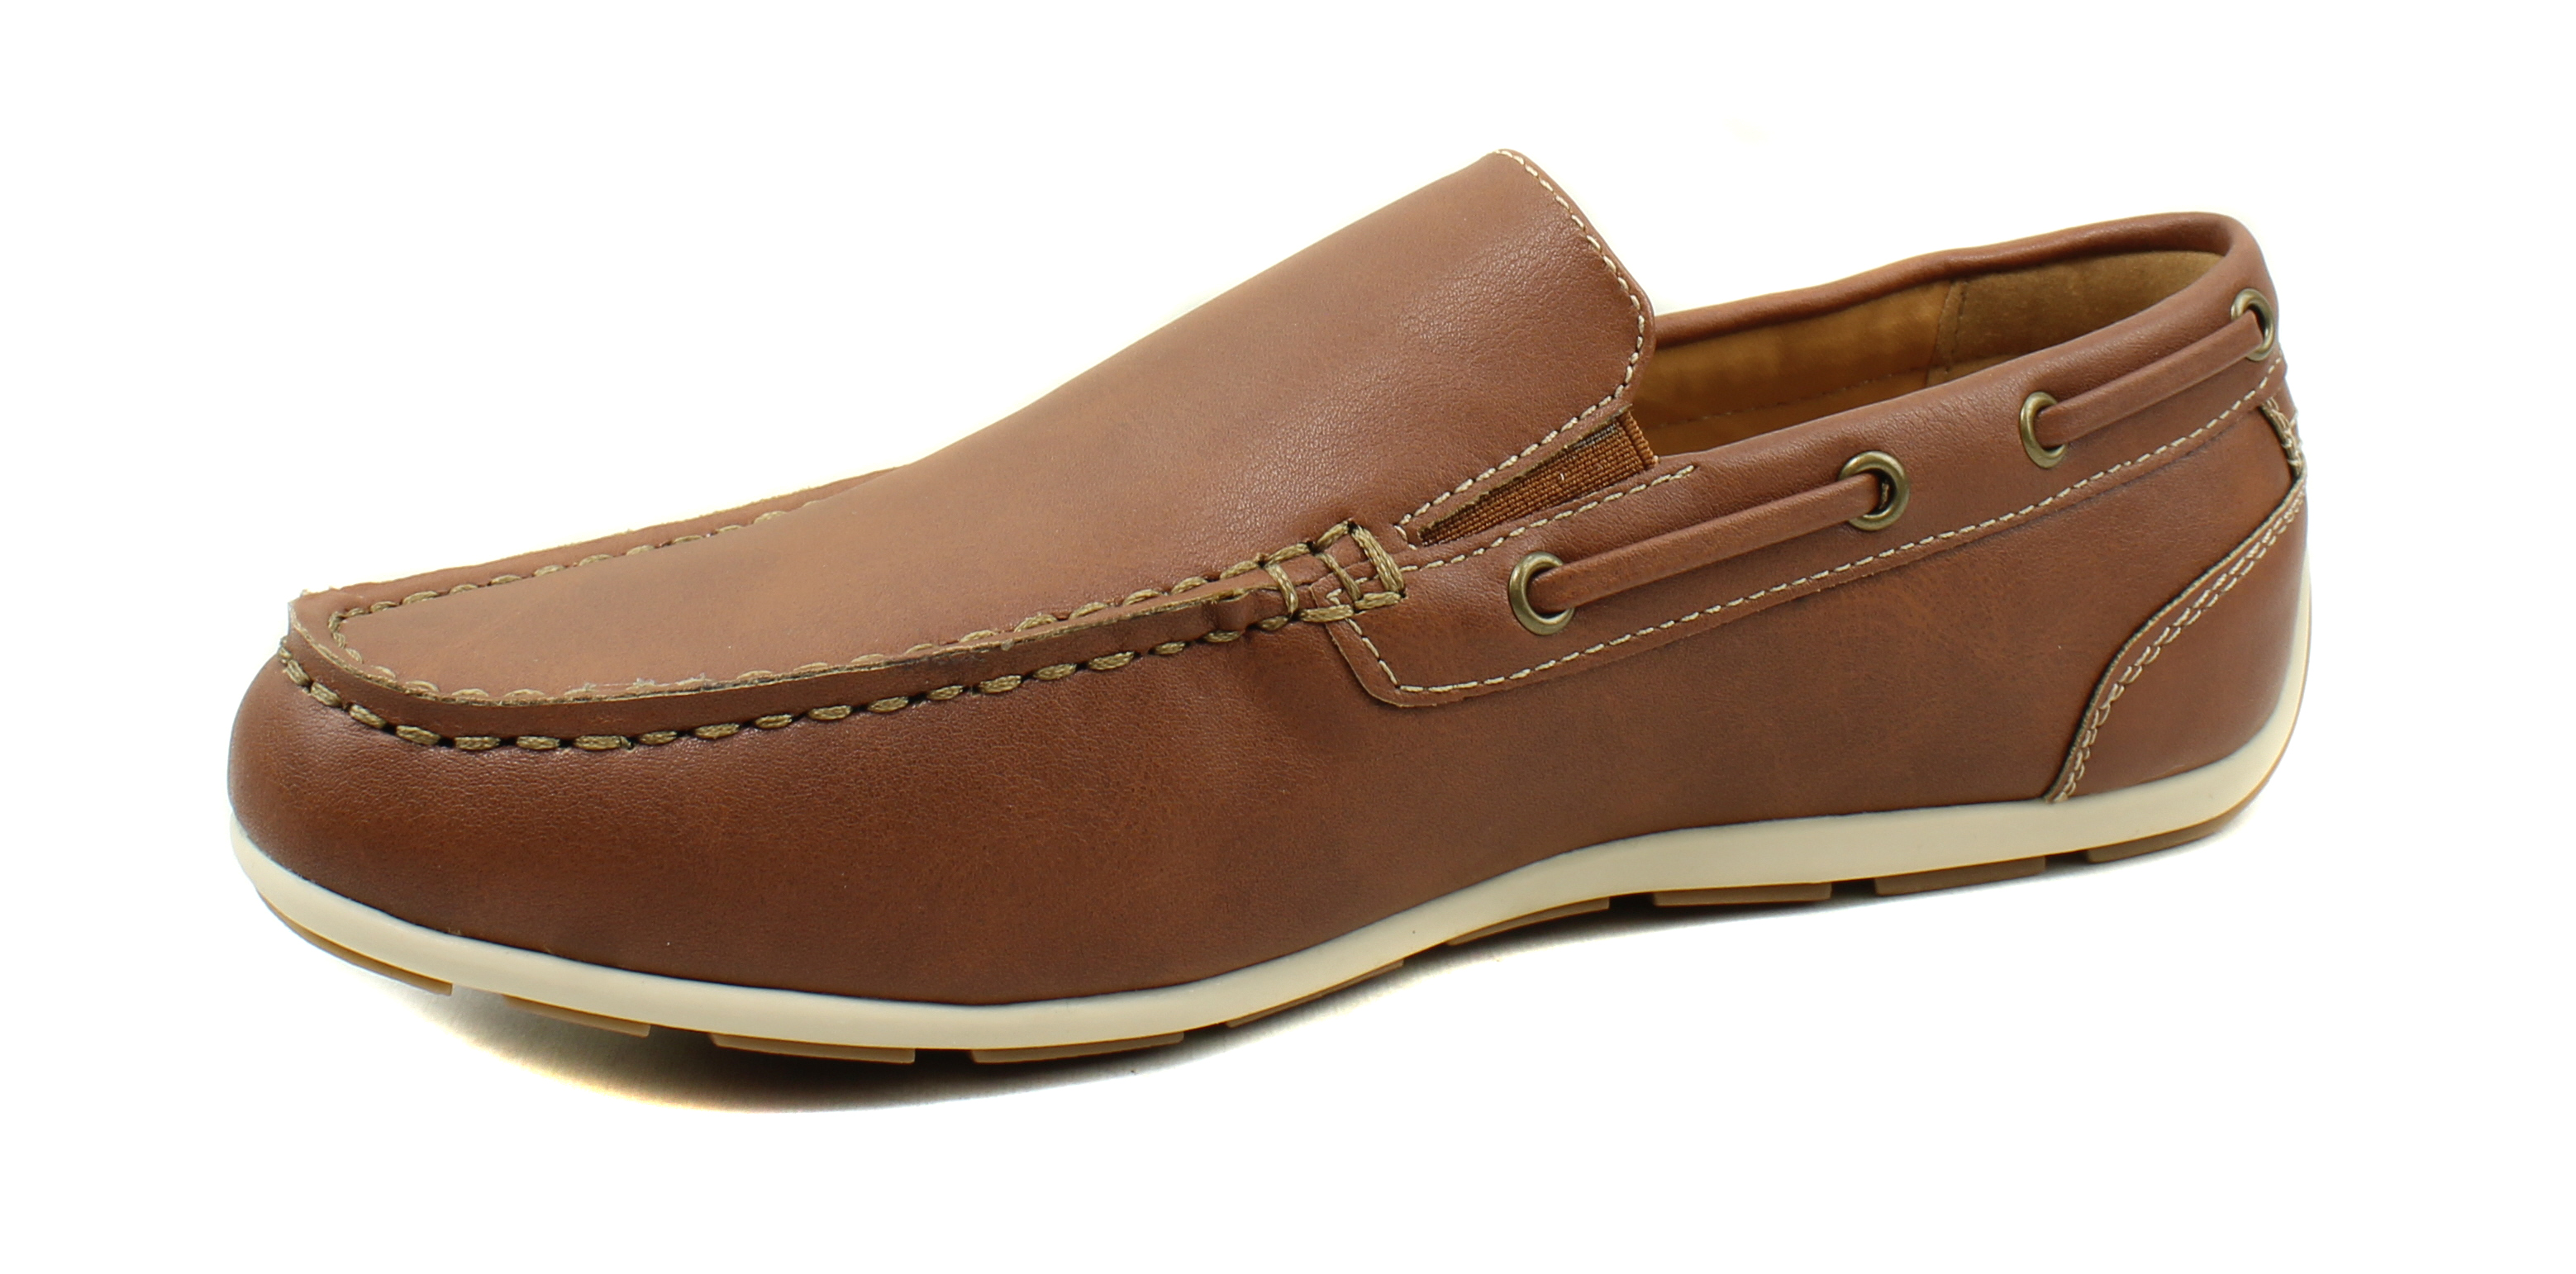 GBX-Mens-Ludlam-Casual-Moc-Toe-Slip-On-Boat-Shoe-Driving-Loafers thumbnail 31